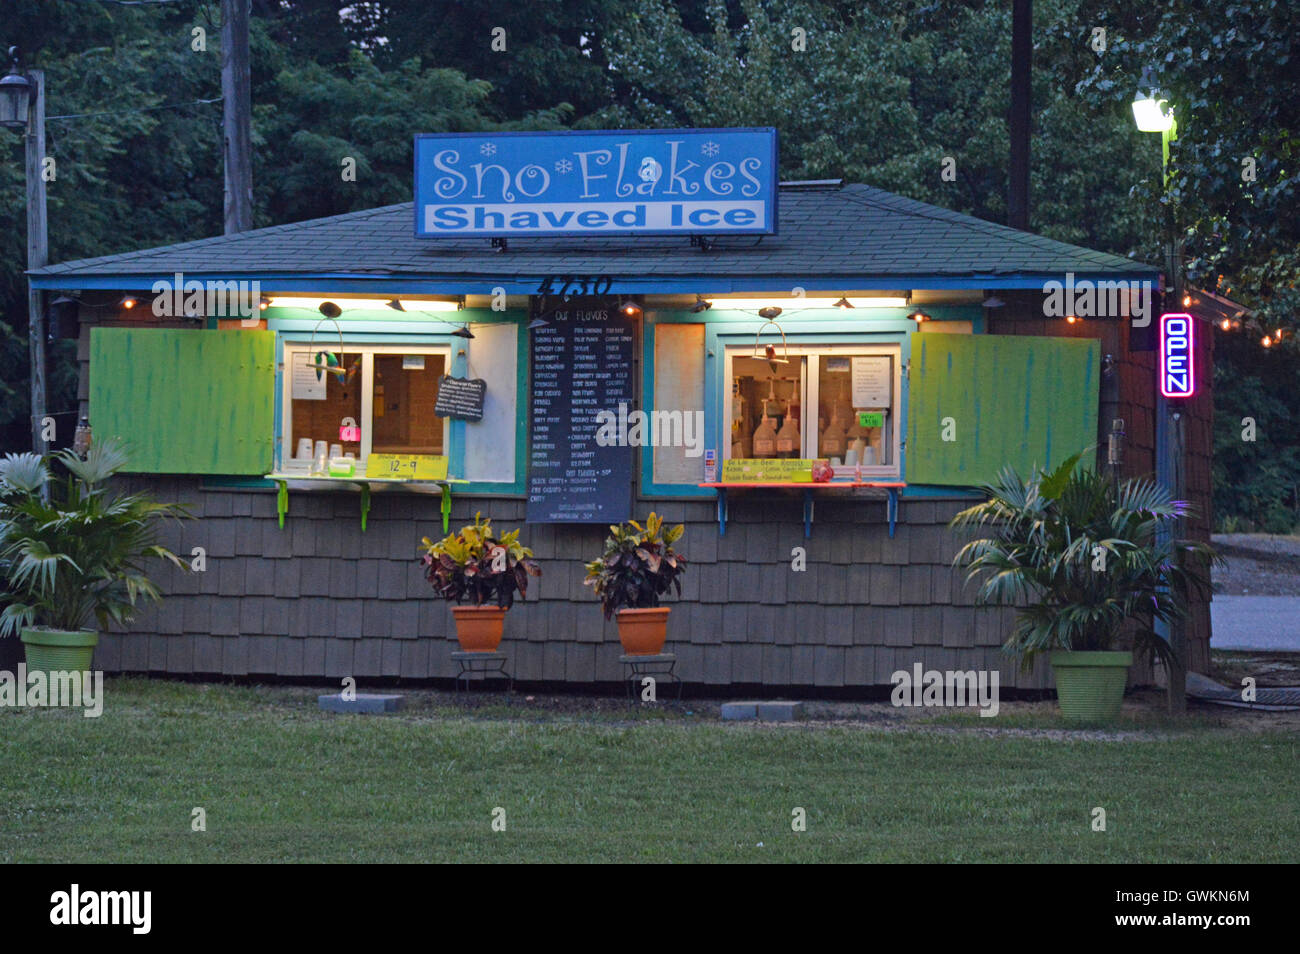 A roadside sno cone stand at dusk in Pasadena, Anne Arundel County, Maryland, US. Features flavored shaved ice. - Stock Image